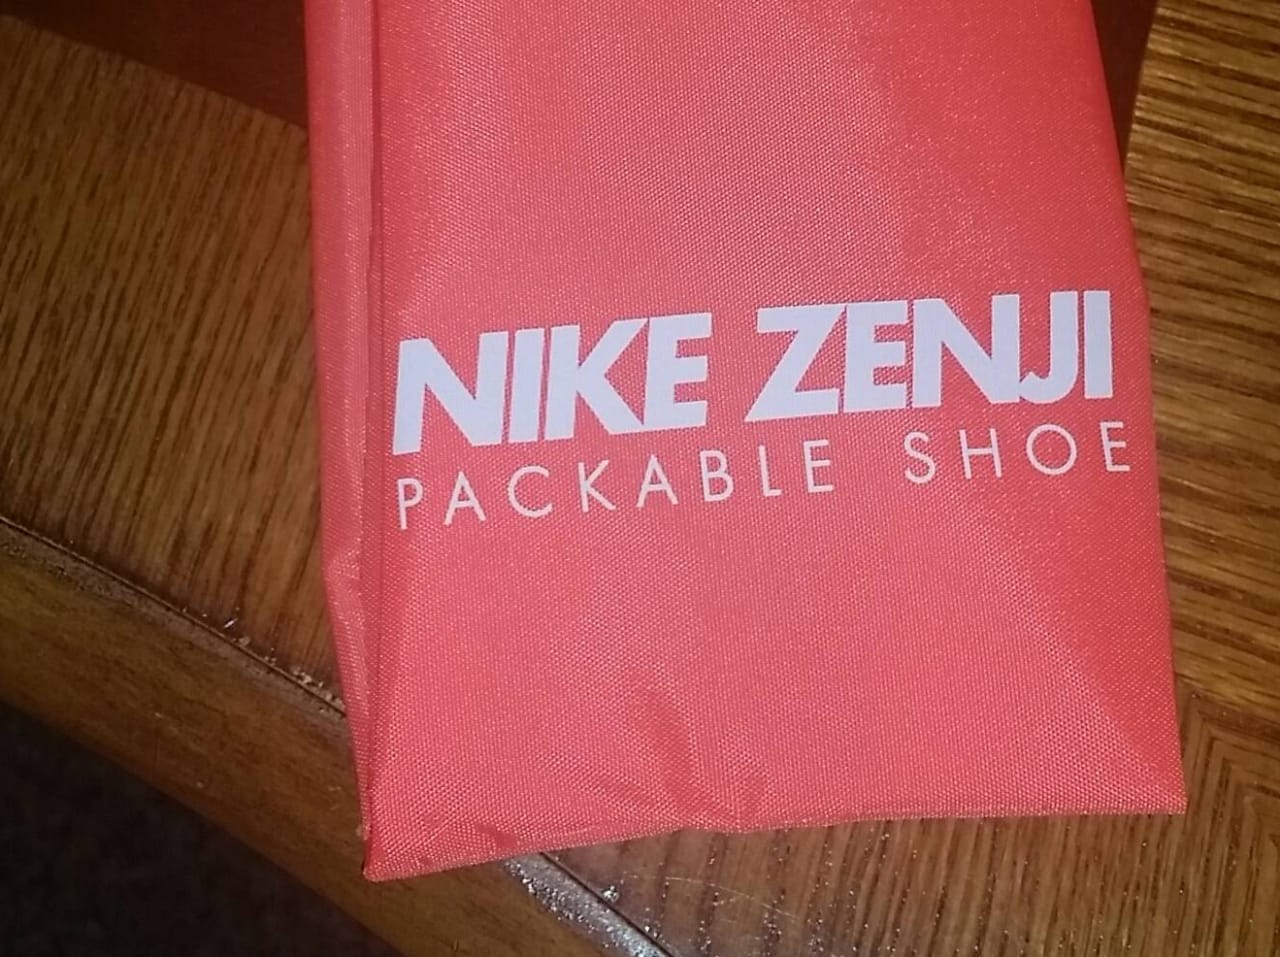 Nike Accidentally Gave Its Newest Sneaker a Racist Name